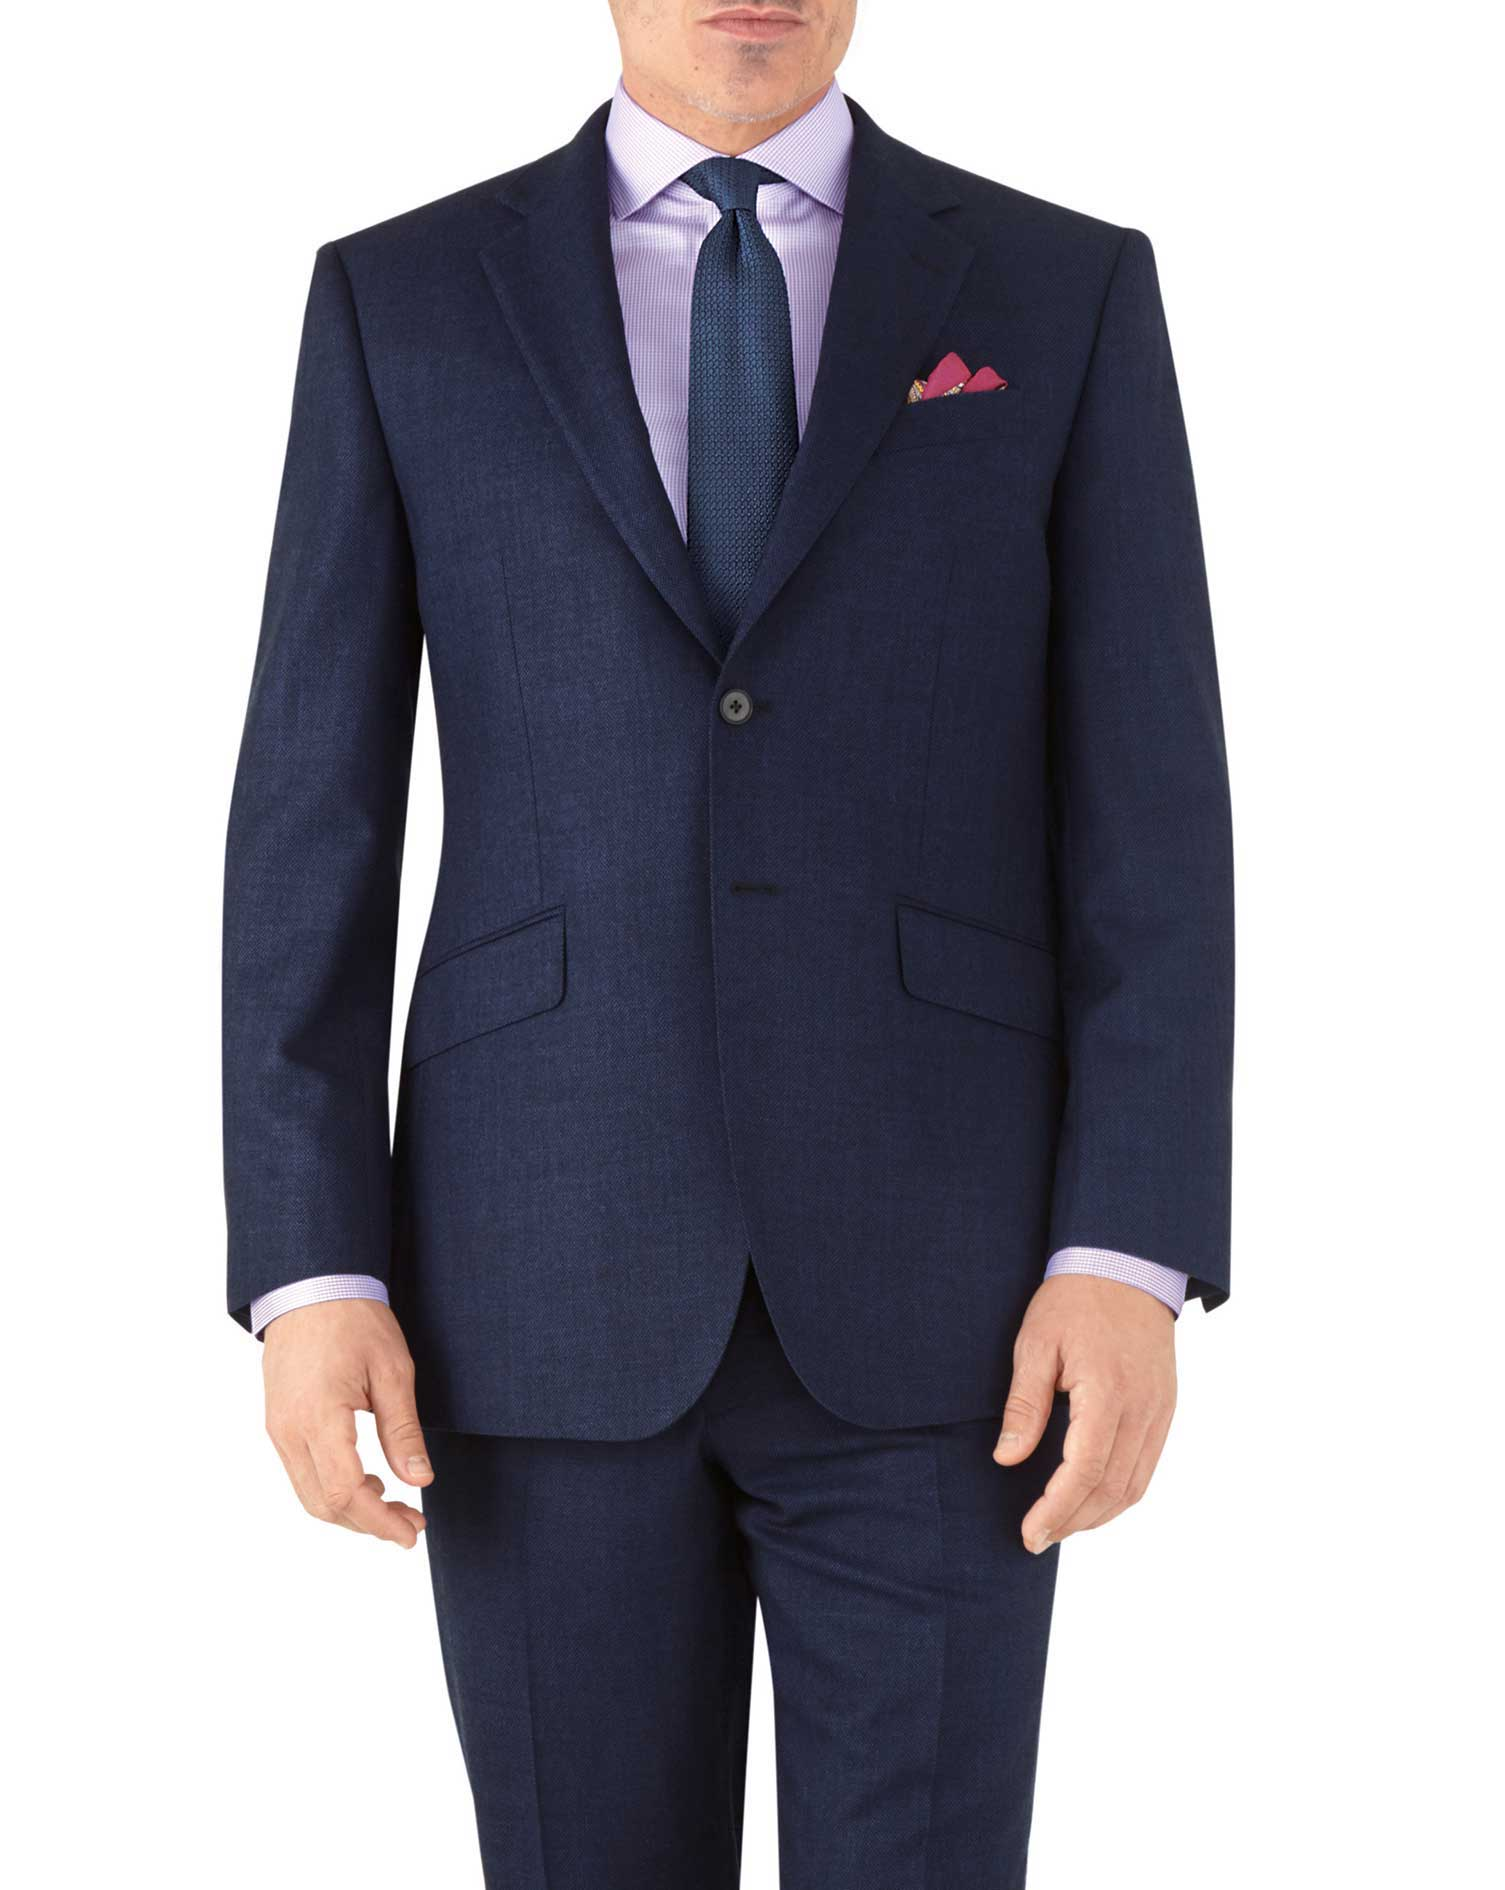 Royal Blue Classic Fit Flannel Business Suit Wool Jacket Size 44 Long by Charles Tyrwhitt